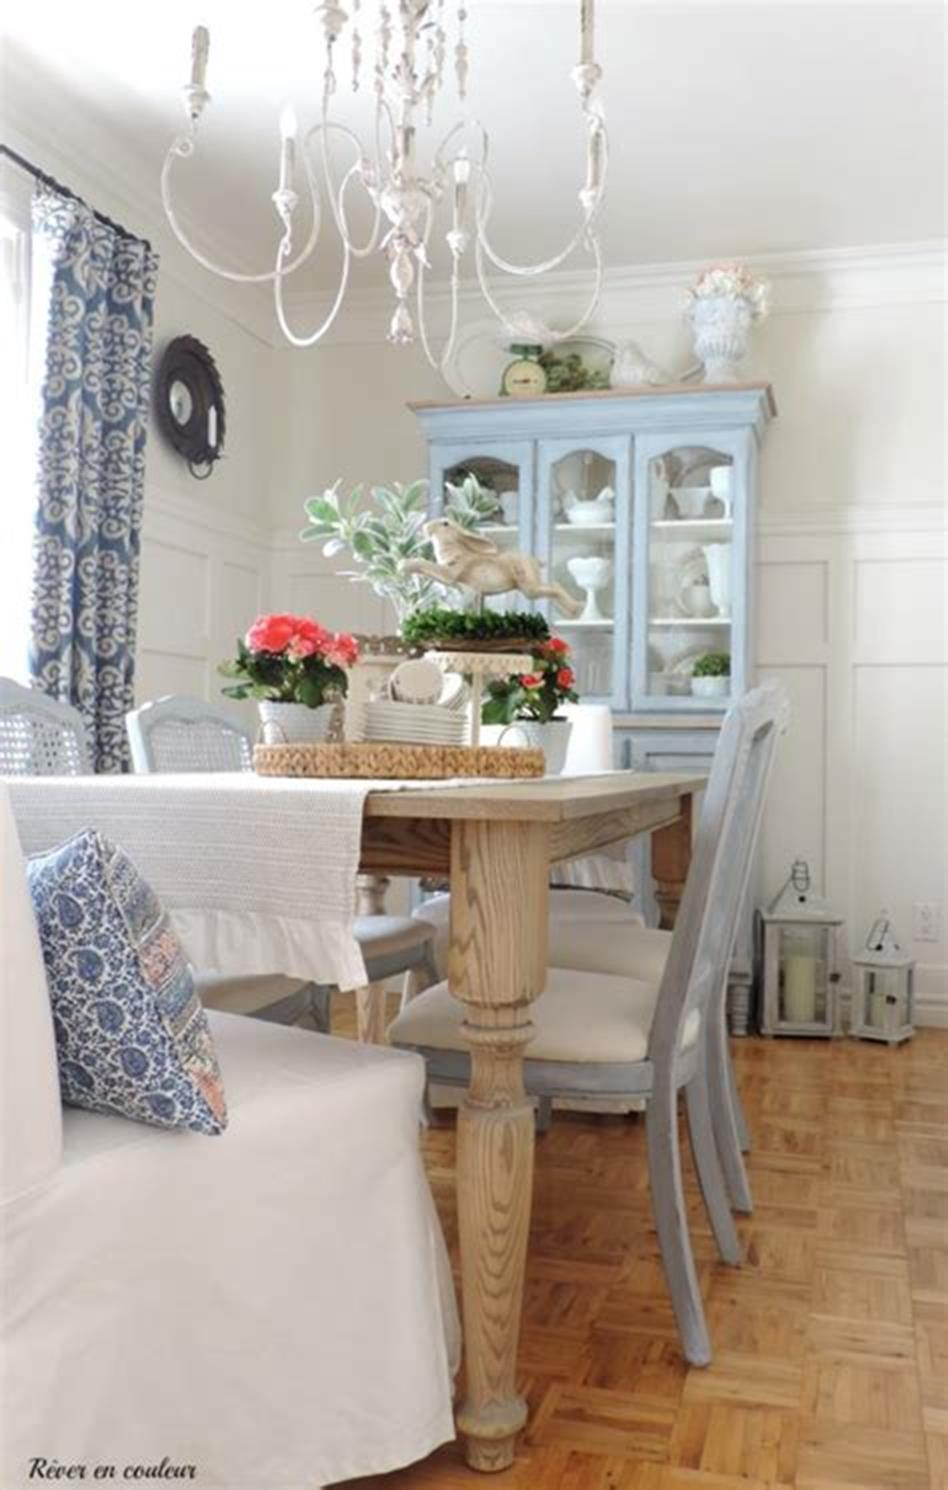 35 Stunning Spring Kitchen and Dining Room Decorating Ideas 2019 26